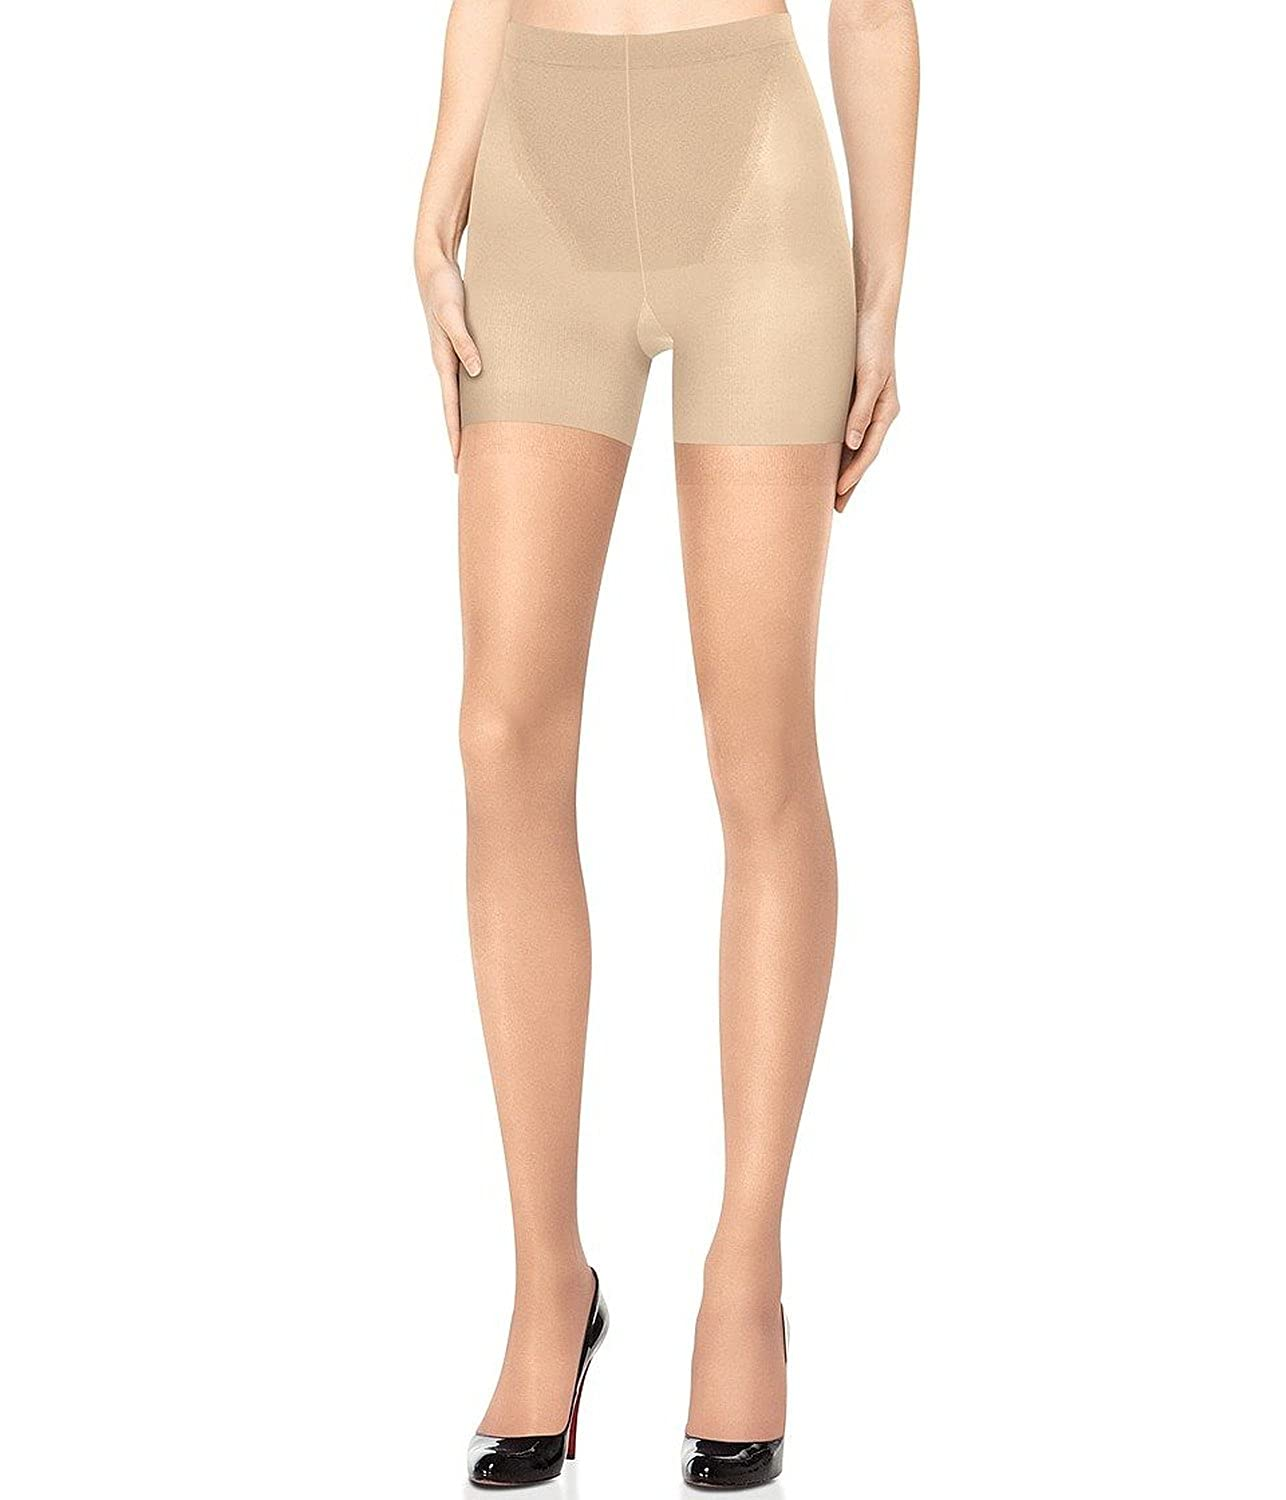 SPANX Women's in-Power(tm) Line Super Shaping Sheers, Spanx Apparel Womens 913